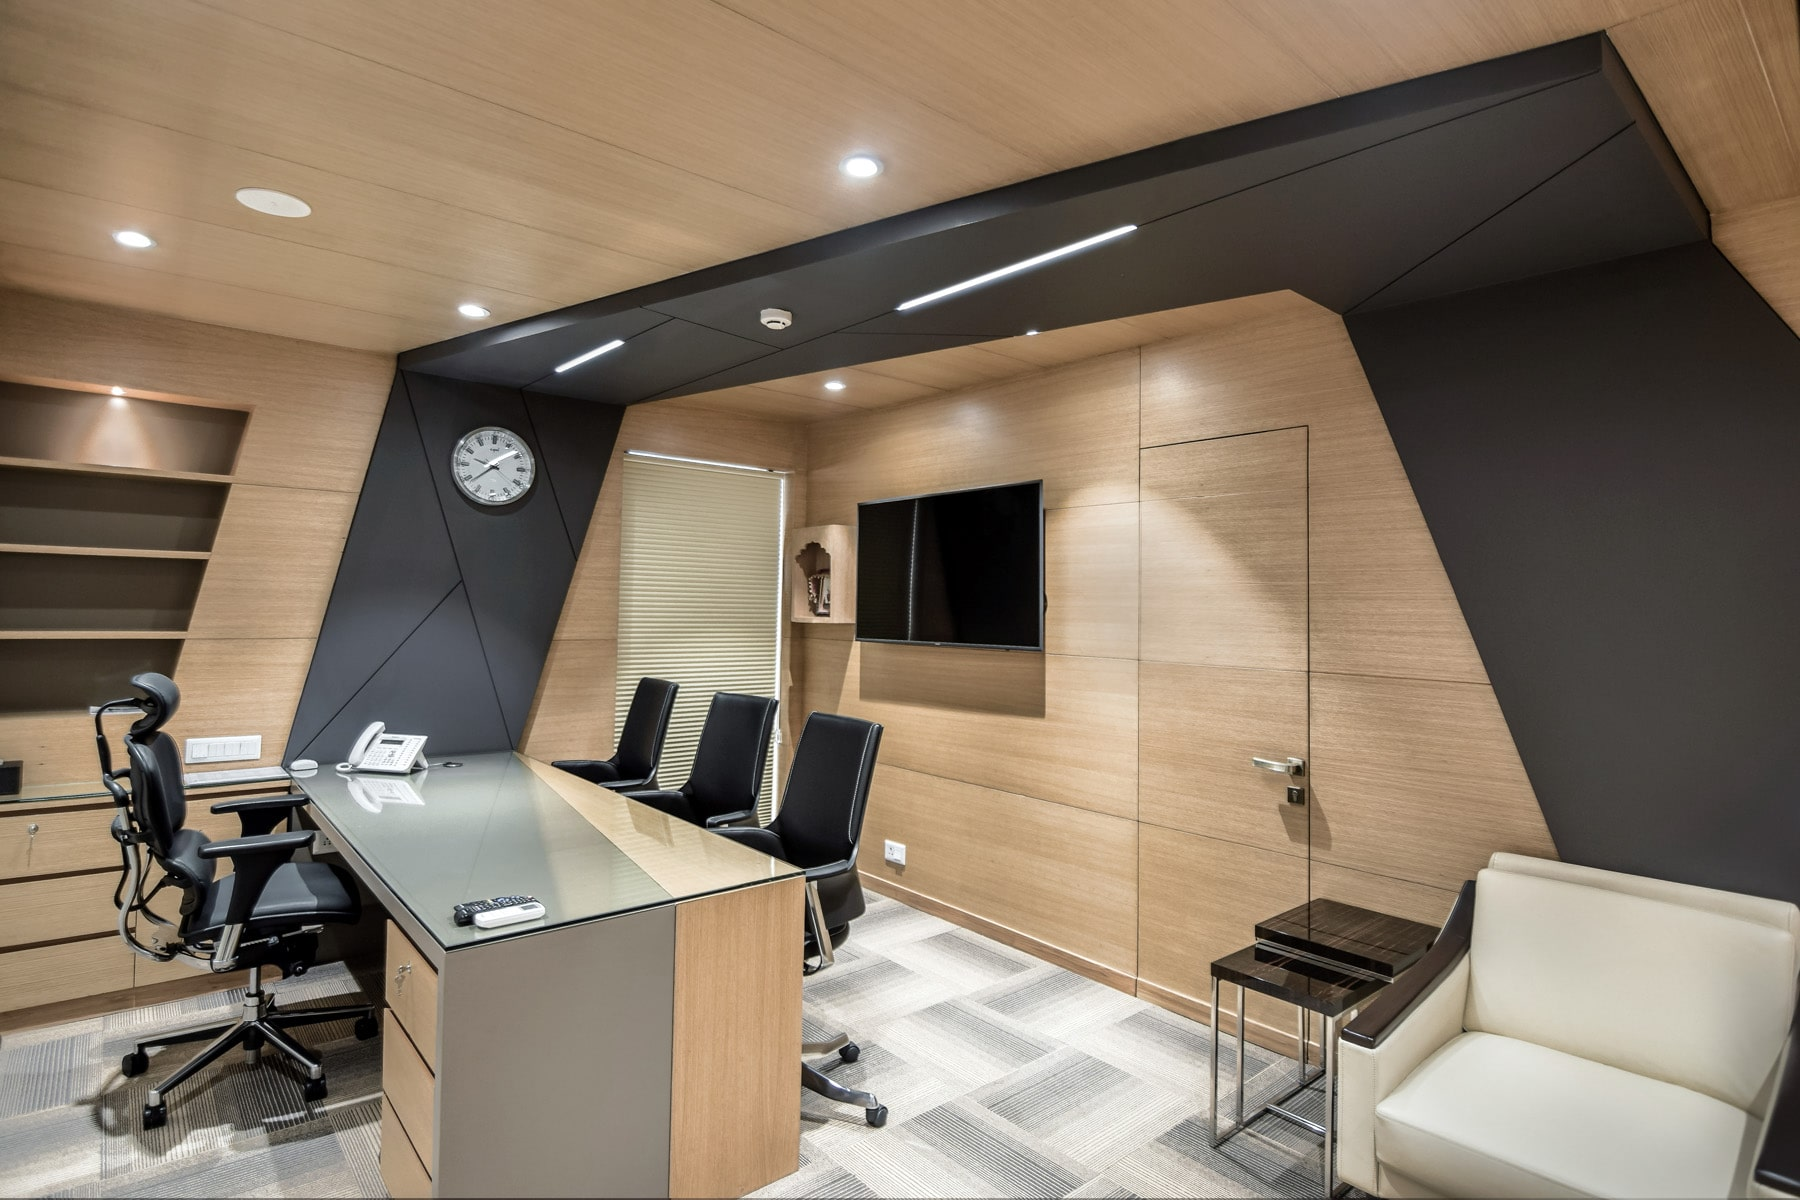 Director room of aakash institute by Conarch Architects